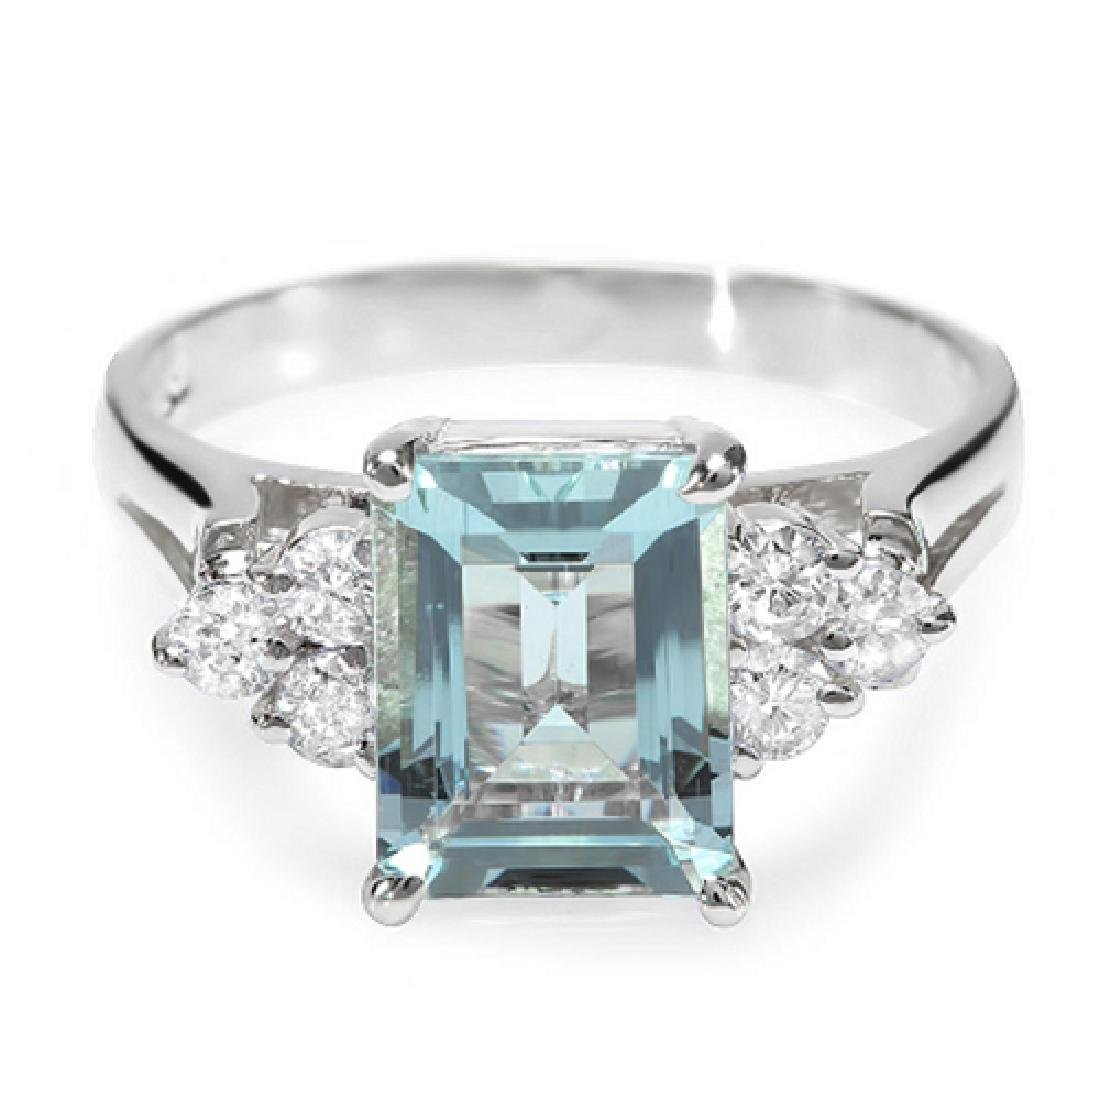 2.30 Carat Natural Aquamarine 18K Solid White Gold